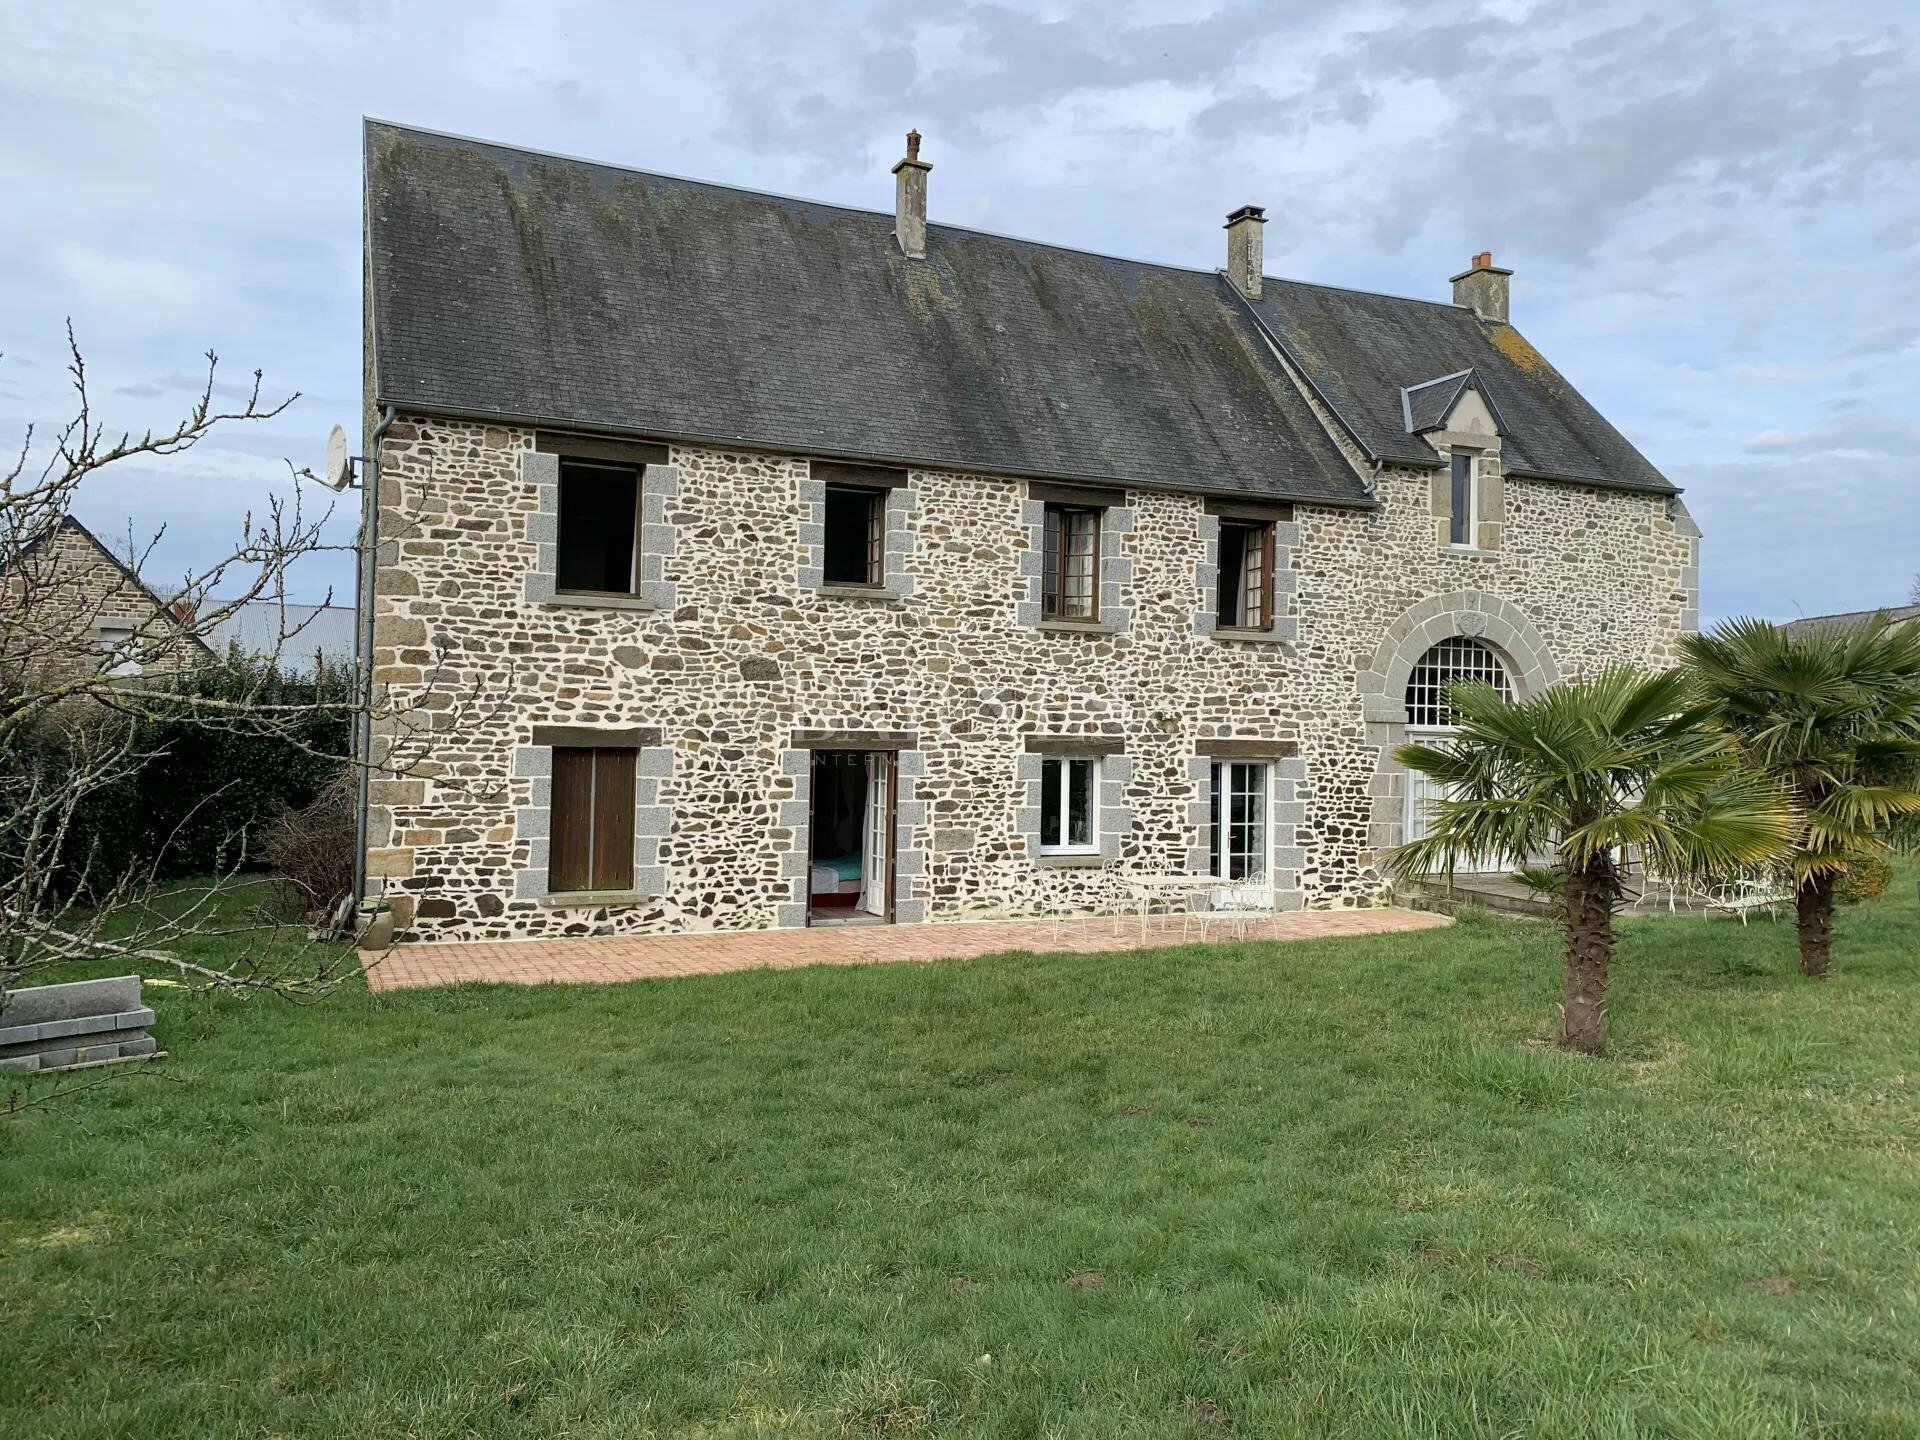 House in Dragey-Ronthon, Normandy, France 1